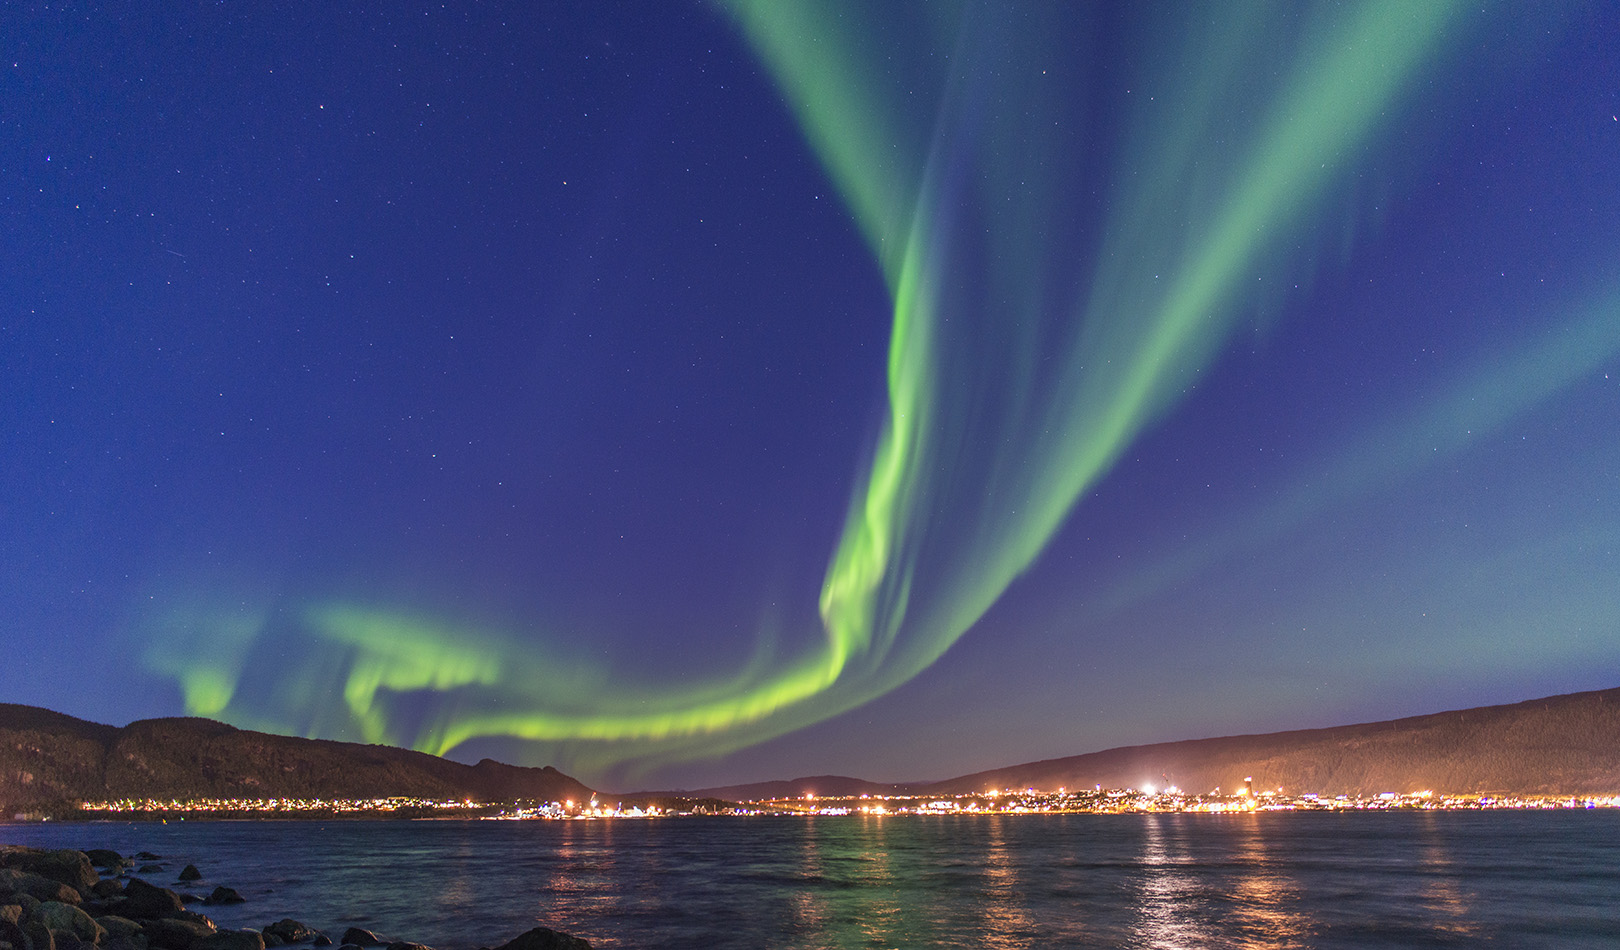 Northern light over Mo i Rana in Nordland.